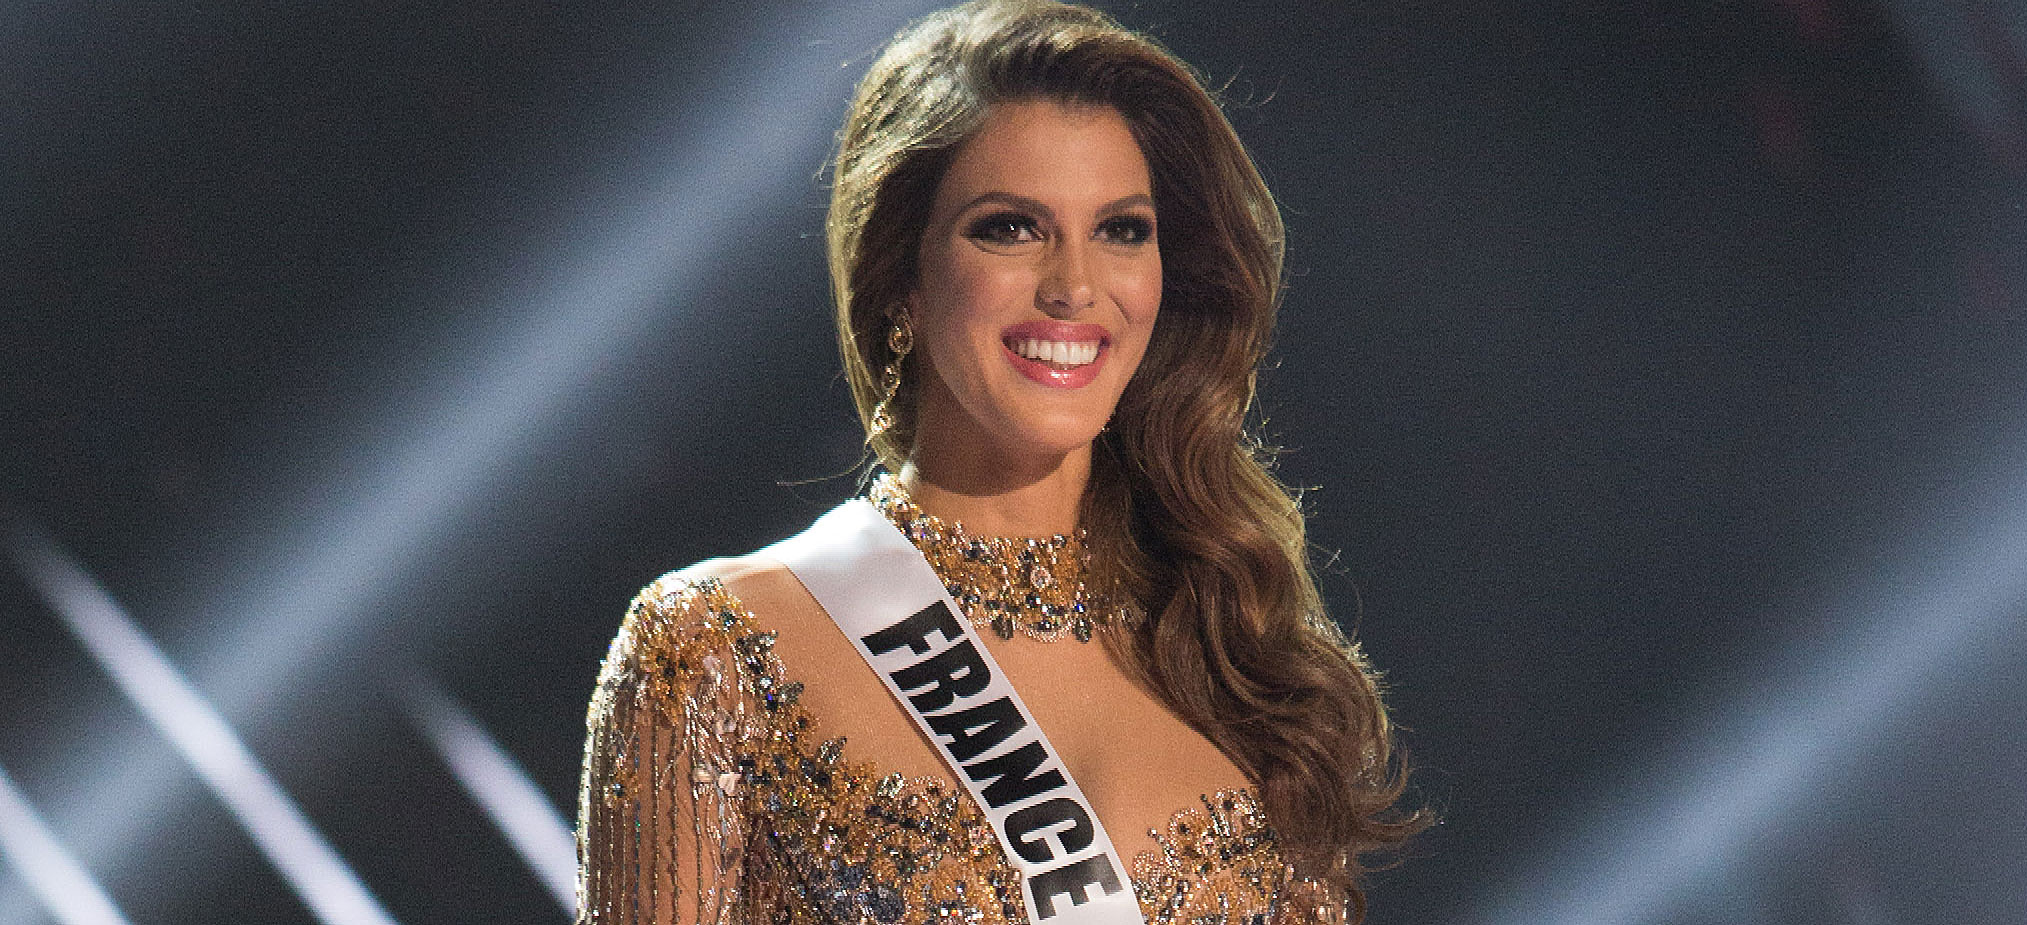 Miss france crowned miss universe in philippines - Miss univers iris mittenaere ...